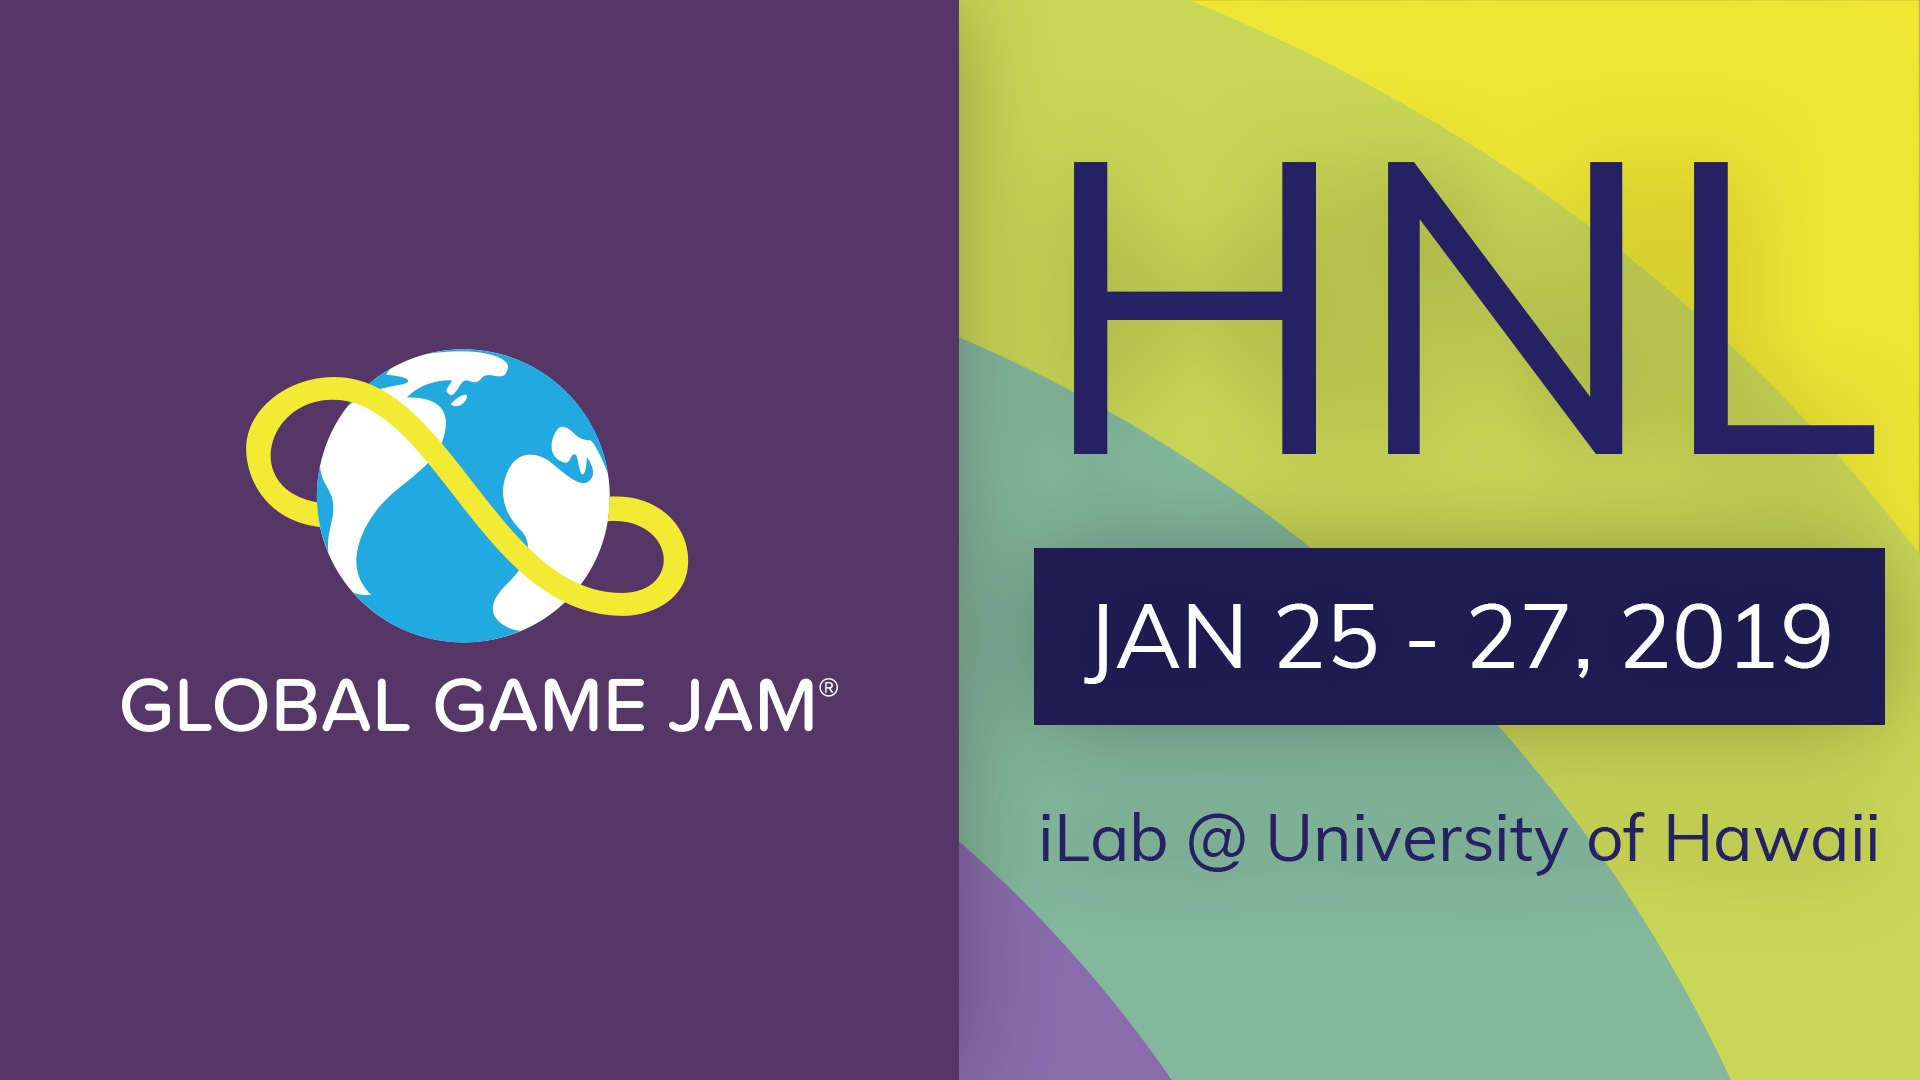 Global Game Jam 2019 - Honolulu